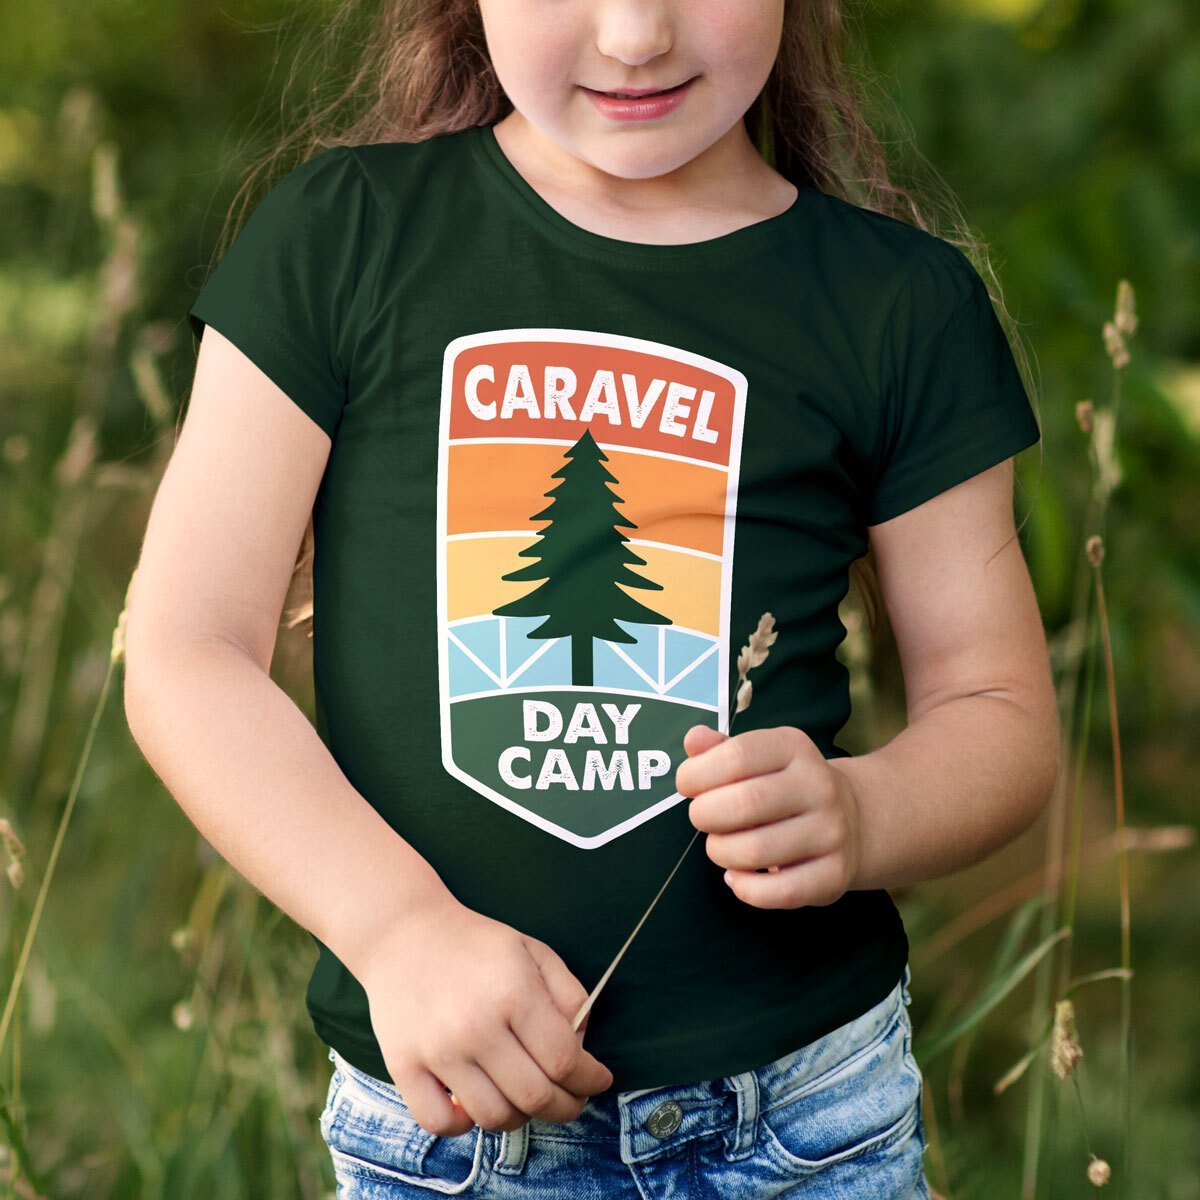 Caravel Day Camp Logo & Graphic Design by BrandSwan, a graphic design company